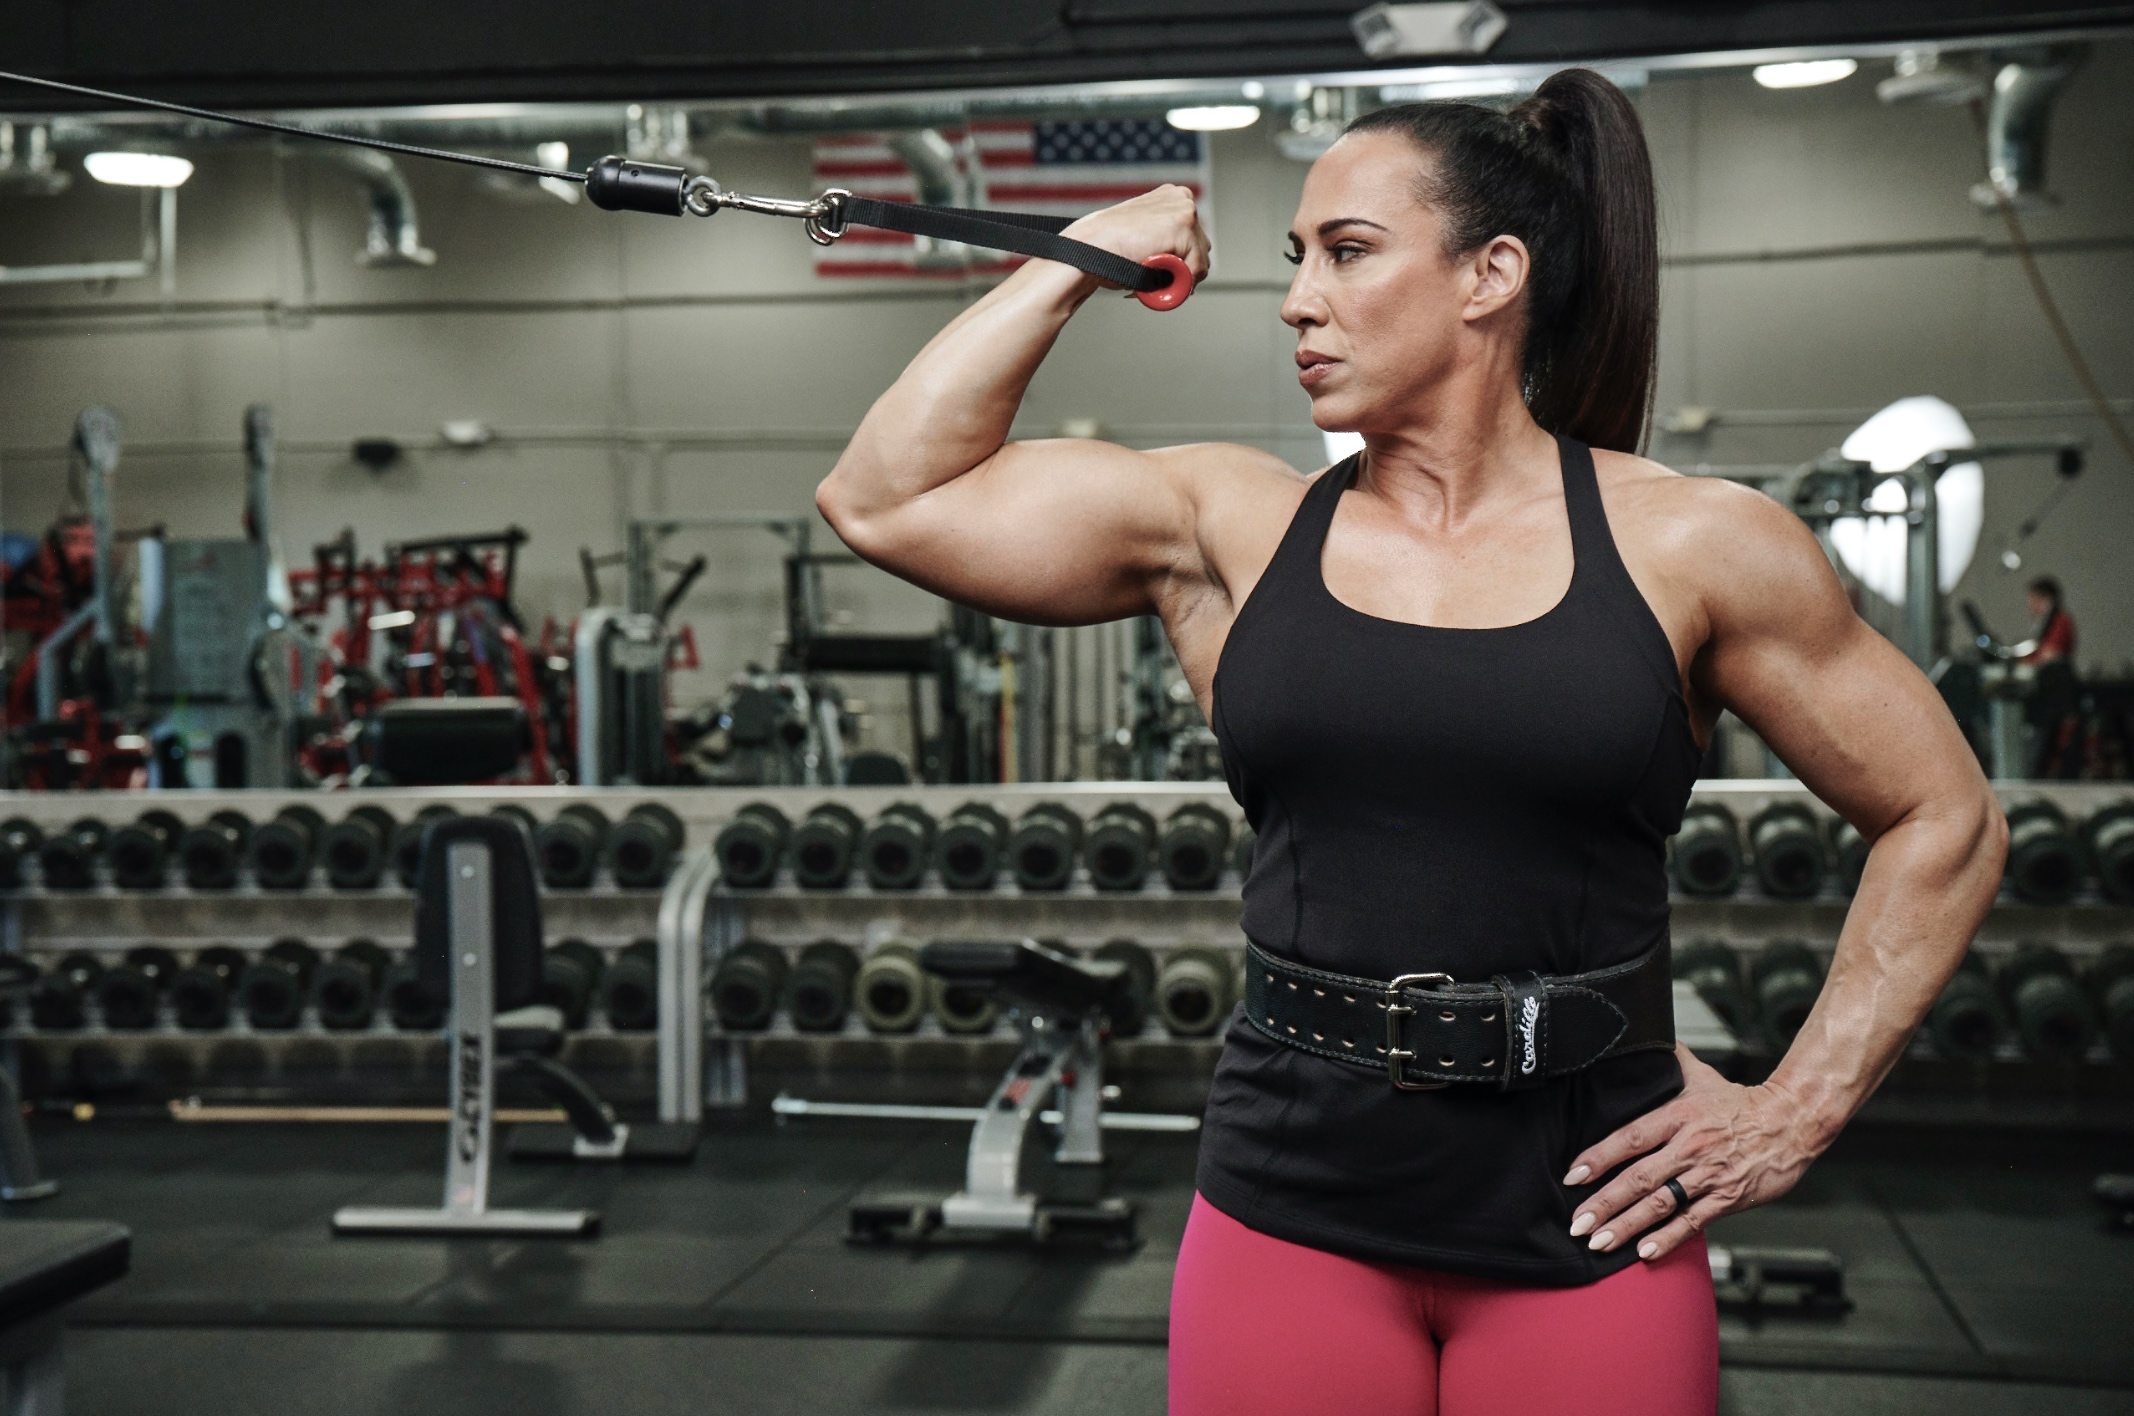 Forbes Uncovers How Dany Garcia's Pro Bodybuilding Career Goes Hand-In-Hand With Her Business Success